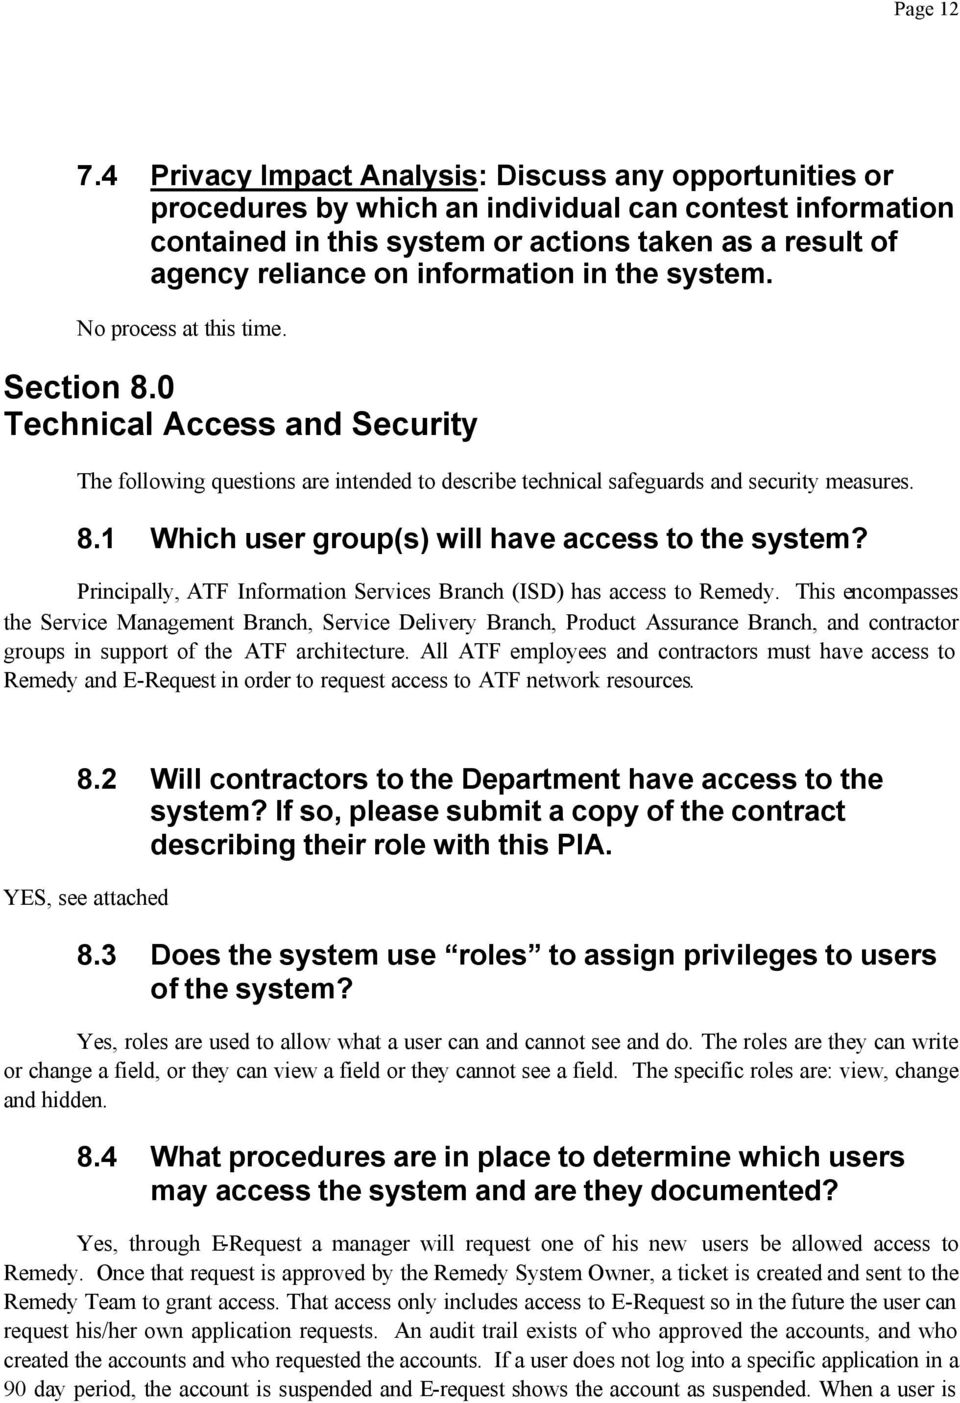 information in the system. No process at this time. Section 8.0 Technical Access and Security The following questions are intended to describe technical safeguards and security measures. 8.1 Which user group(s) will have access to the system?